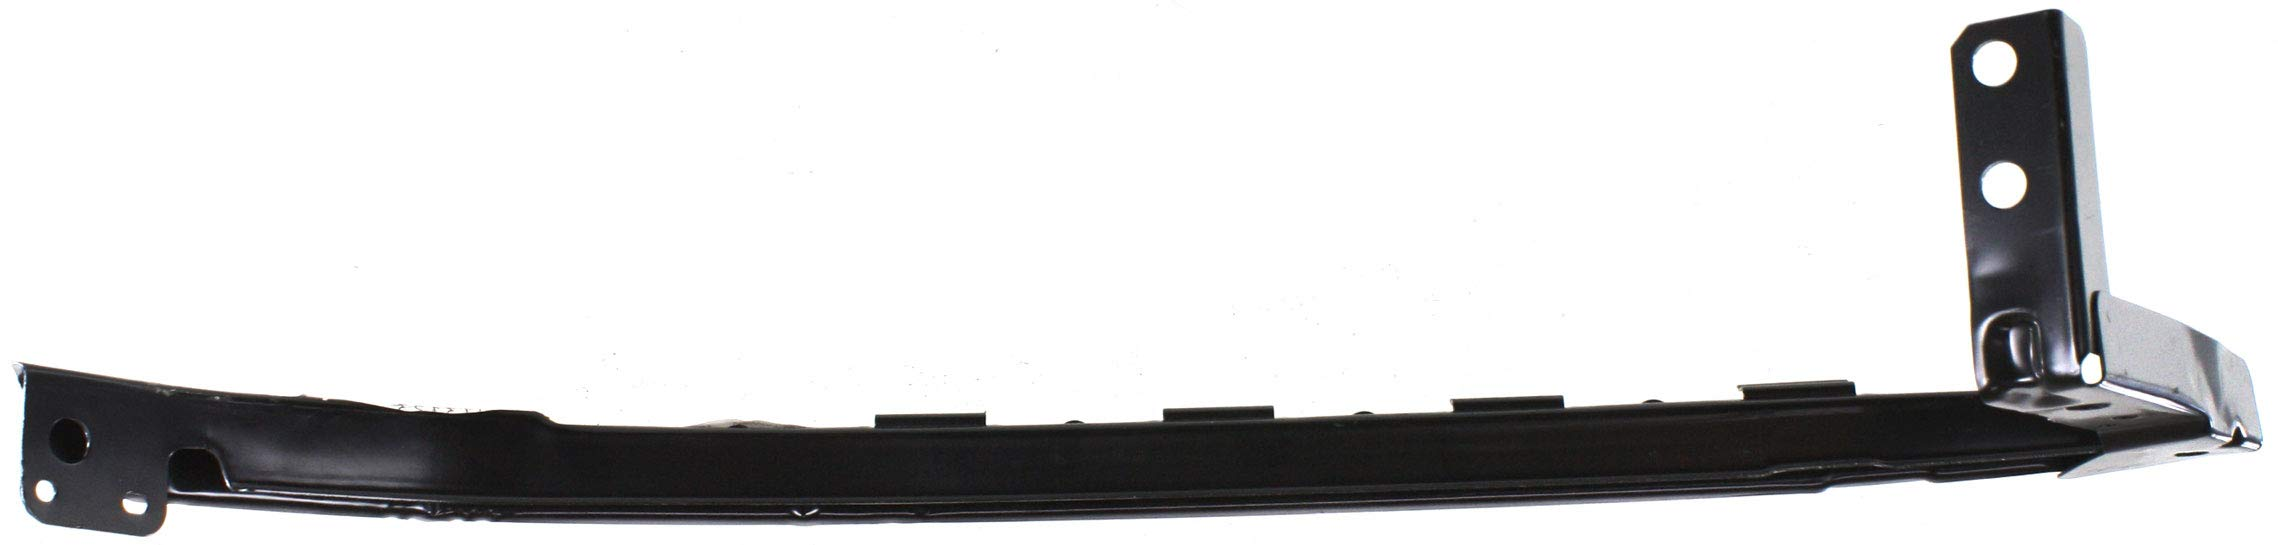 Evan-Fischer Front Bumper Filler Compatible with 2003-2007 Honda Accord Side Beam Coupe/Sedan Driver Side